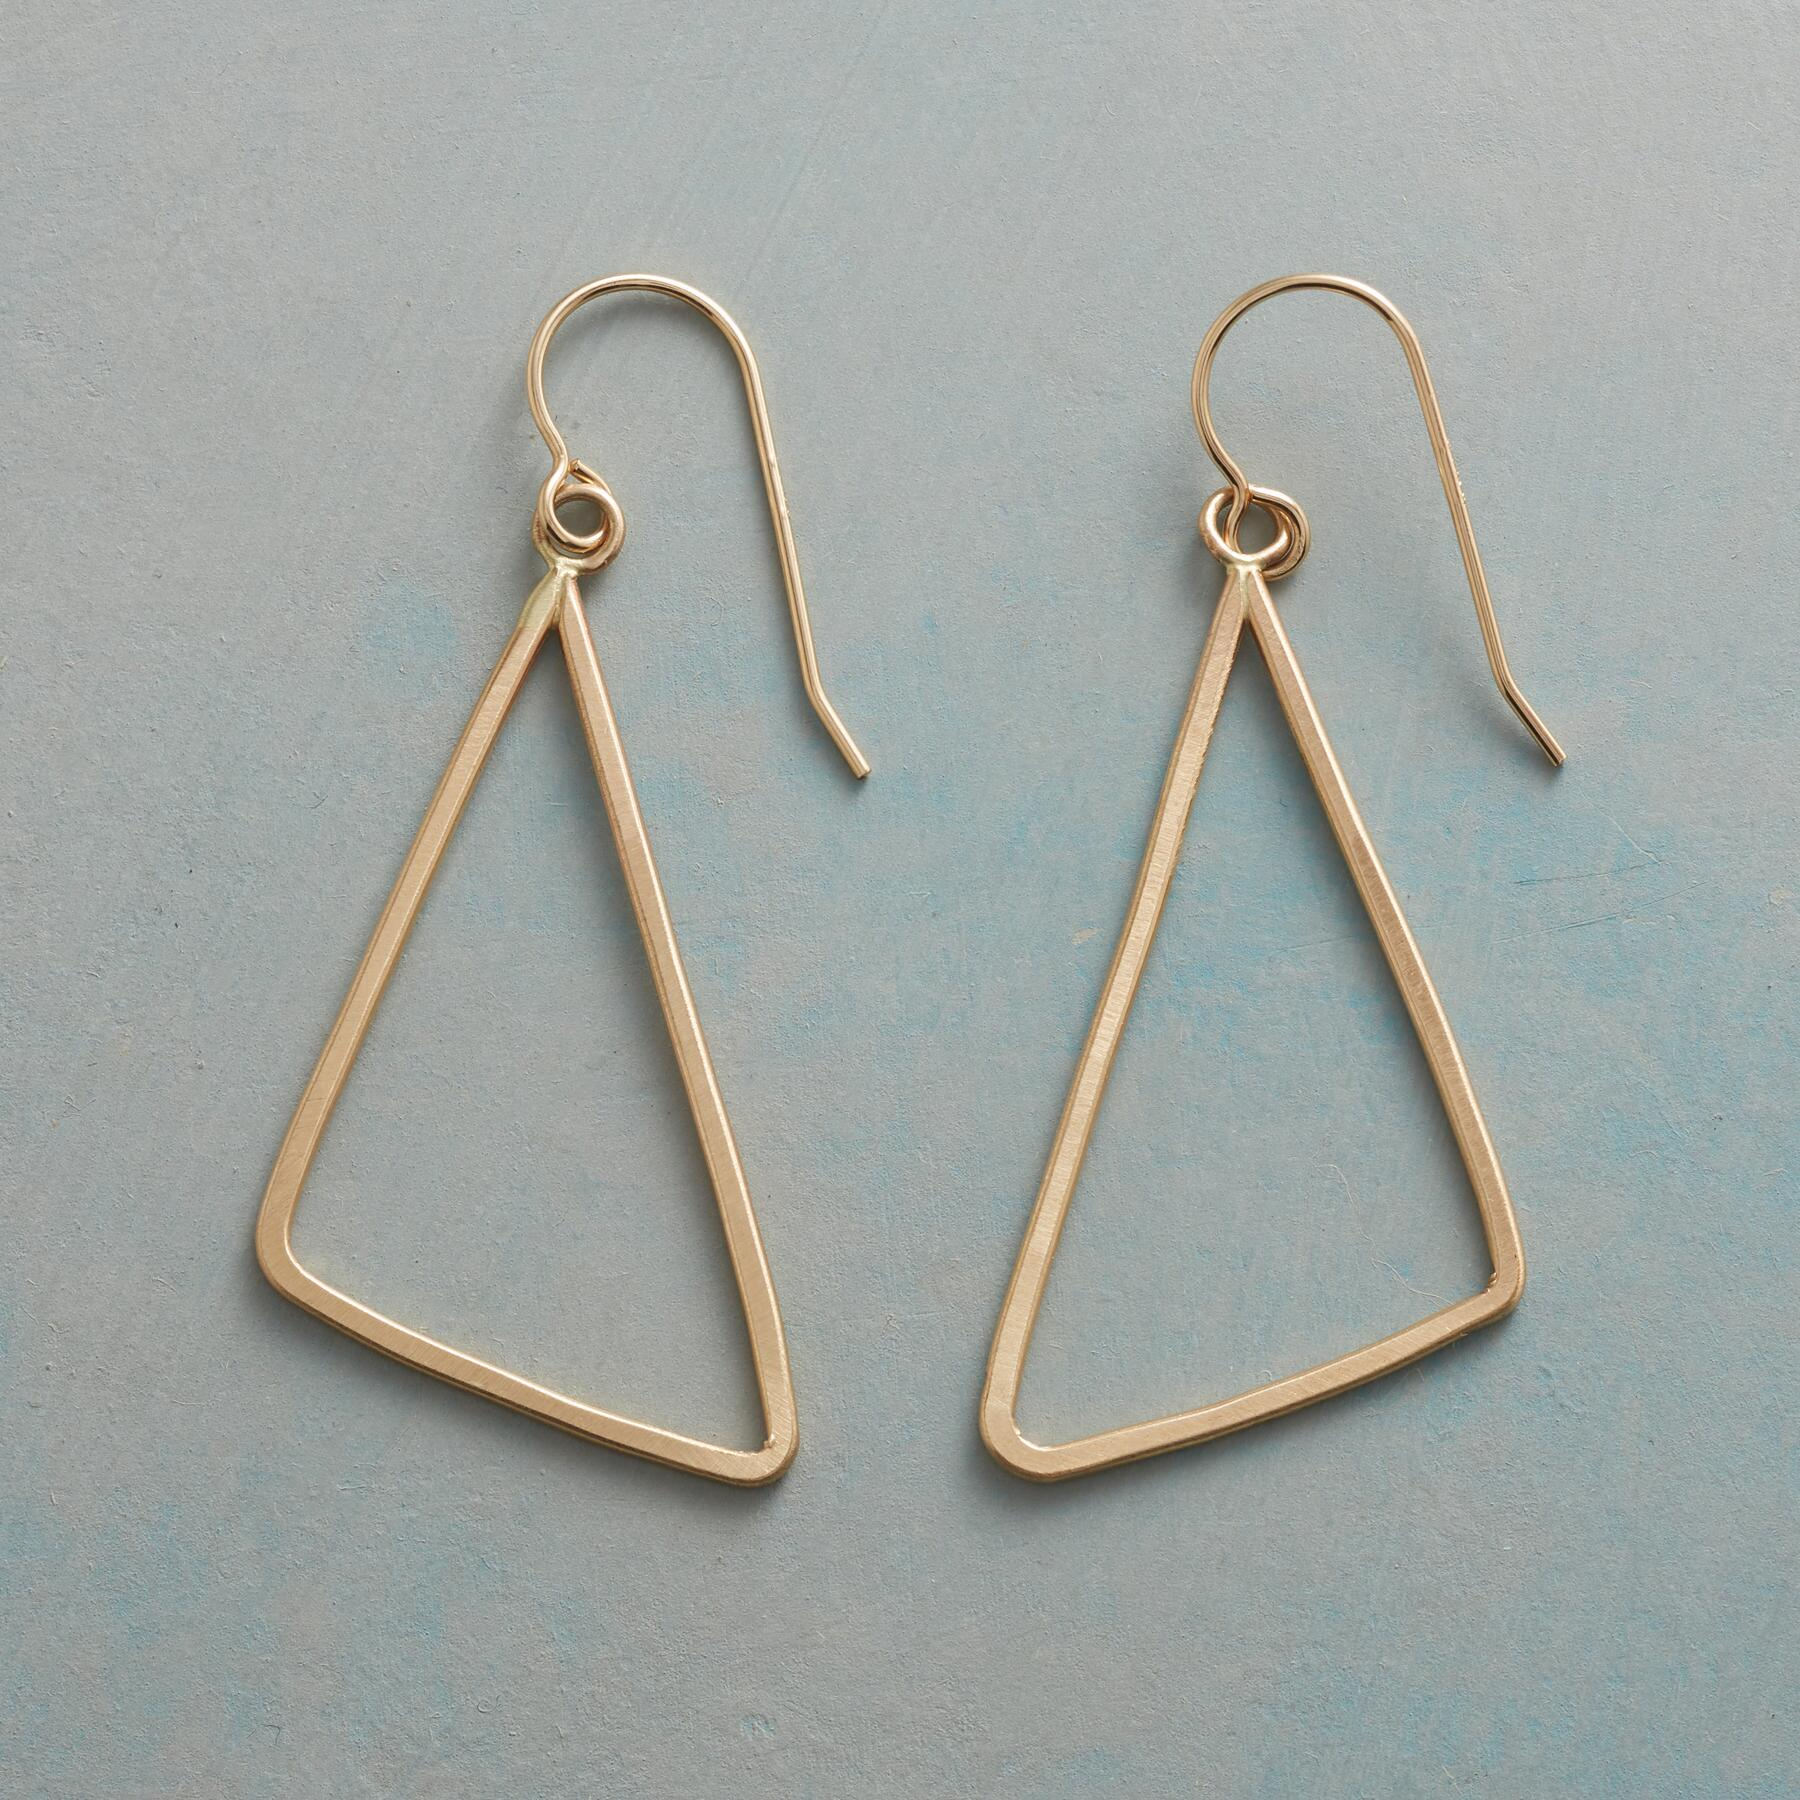 TRY ANGLE EARRINGS: View 1